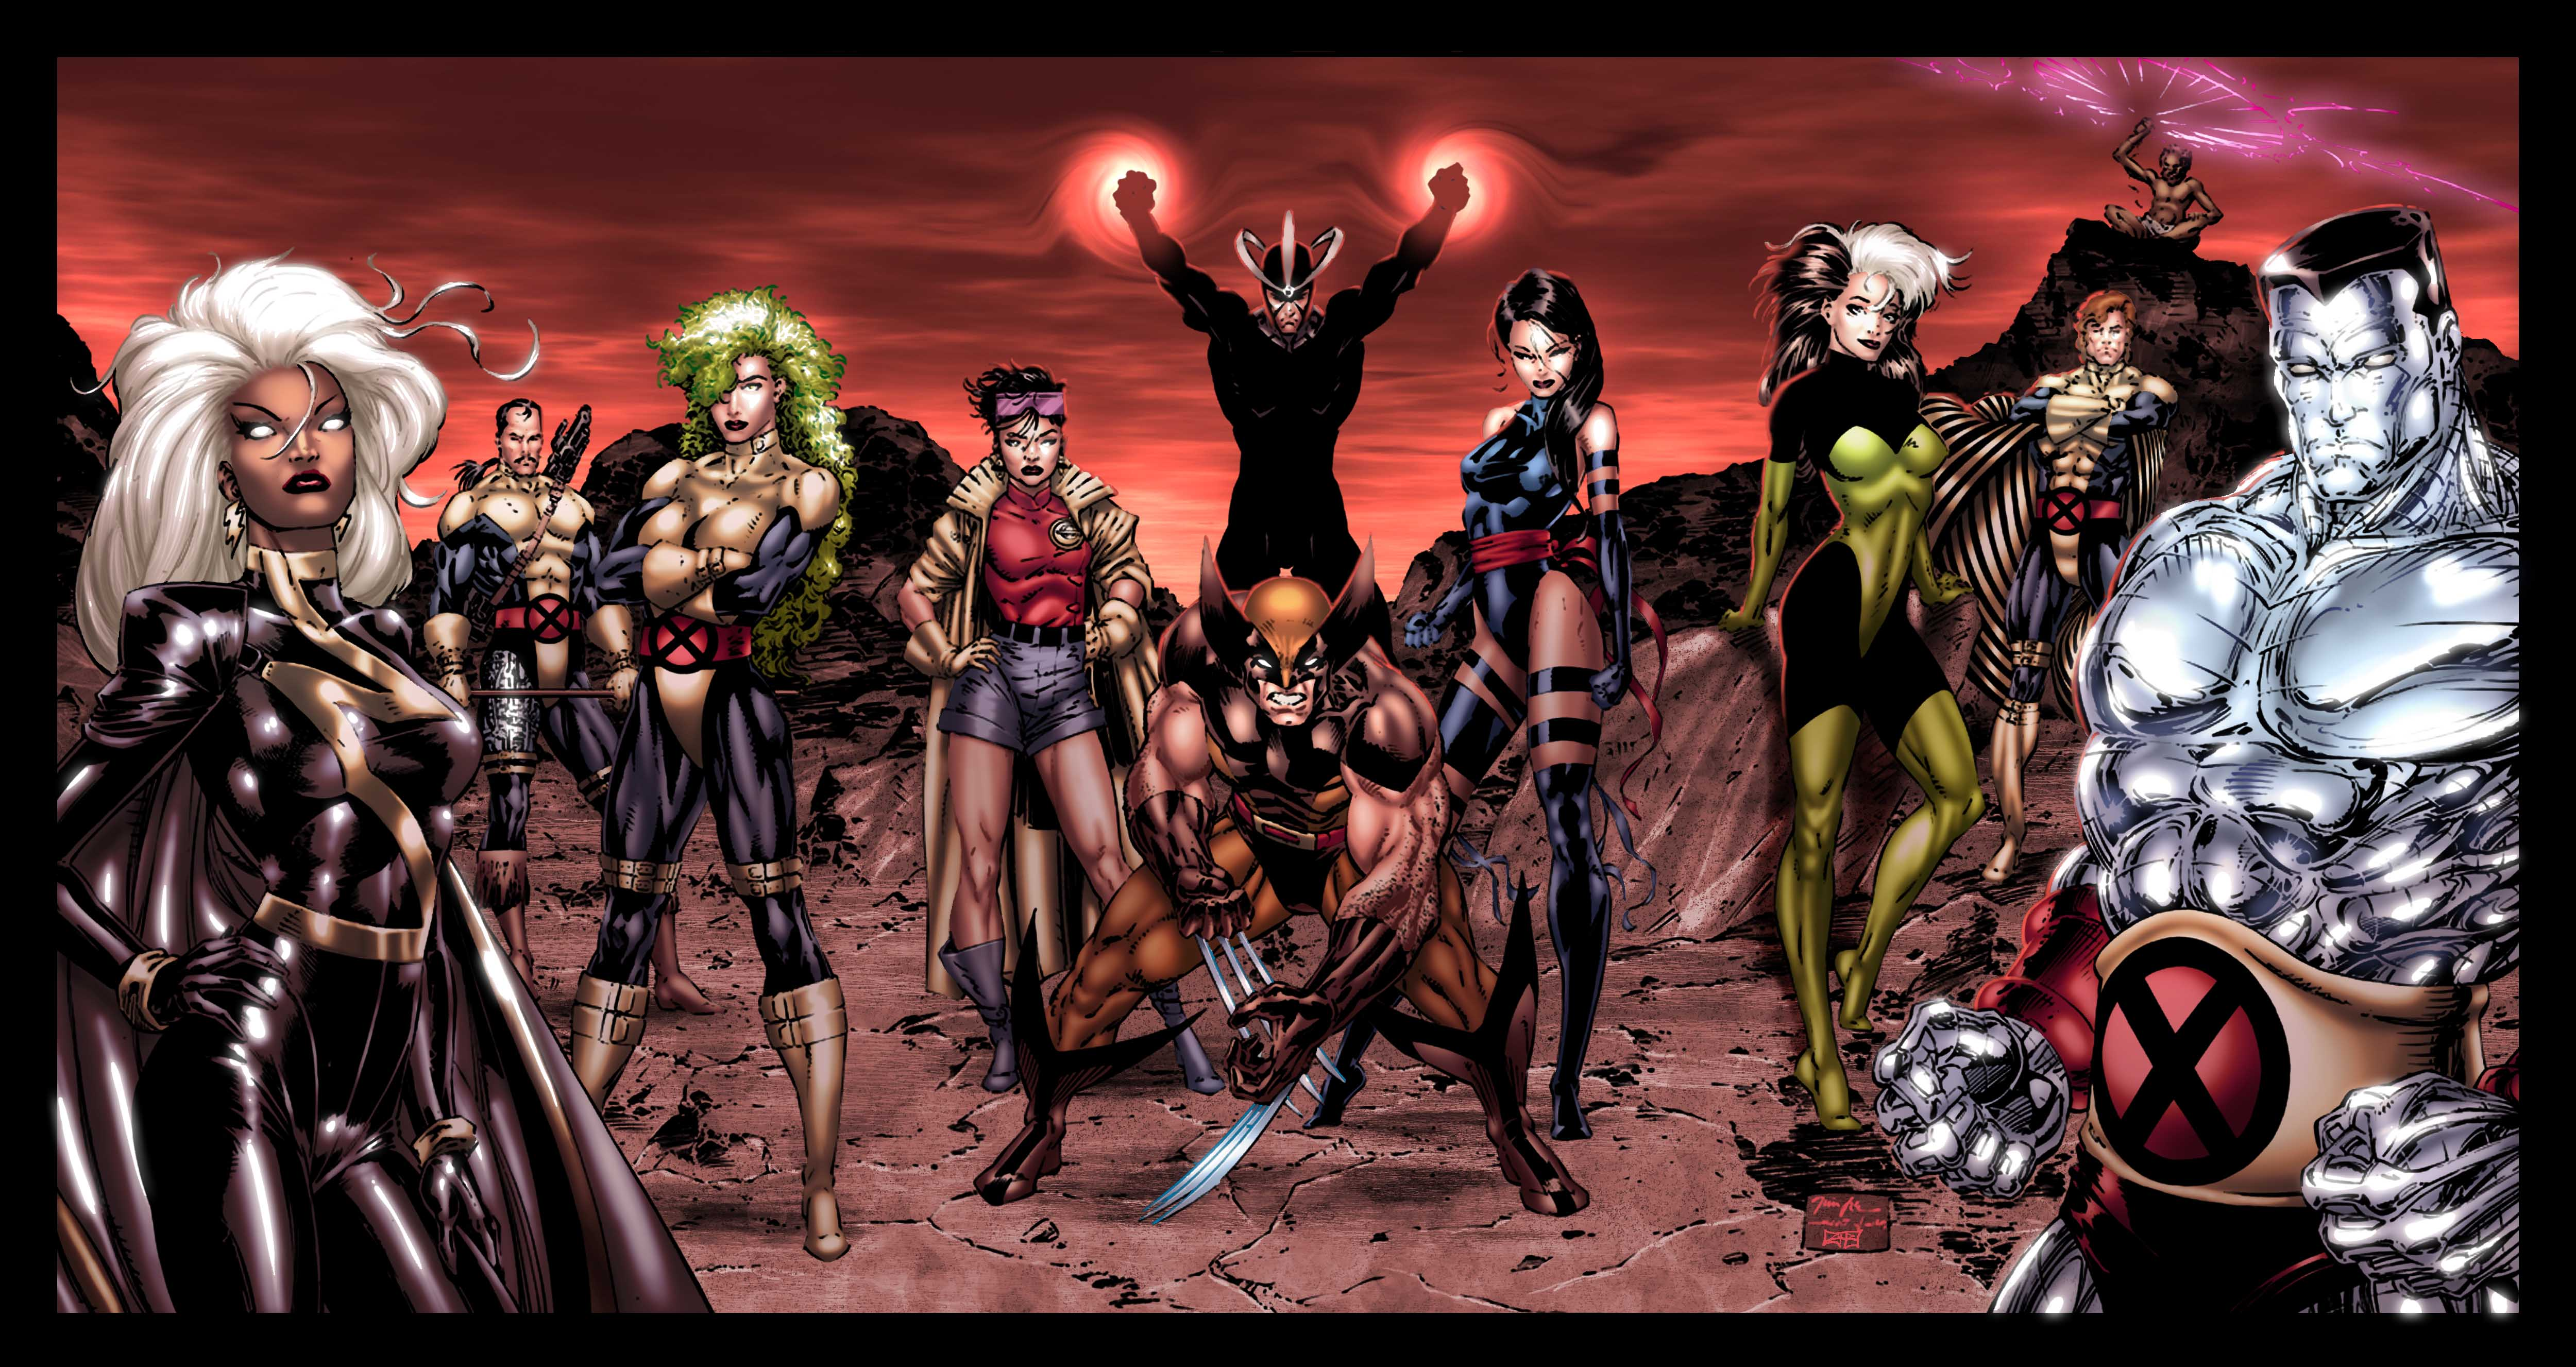 90s X Men Computer Wallpapers Desktop Backgrounds 5000x2653 ID 5000x2653